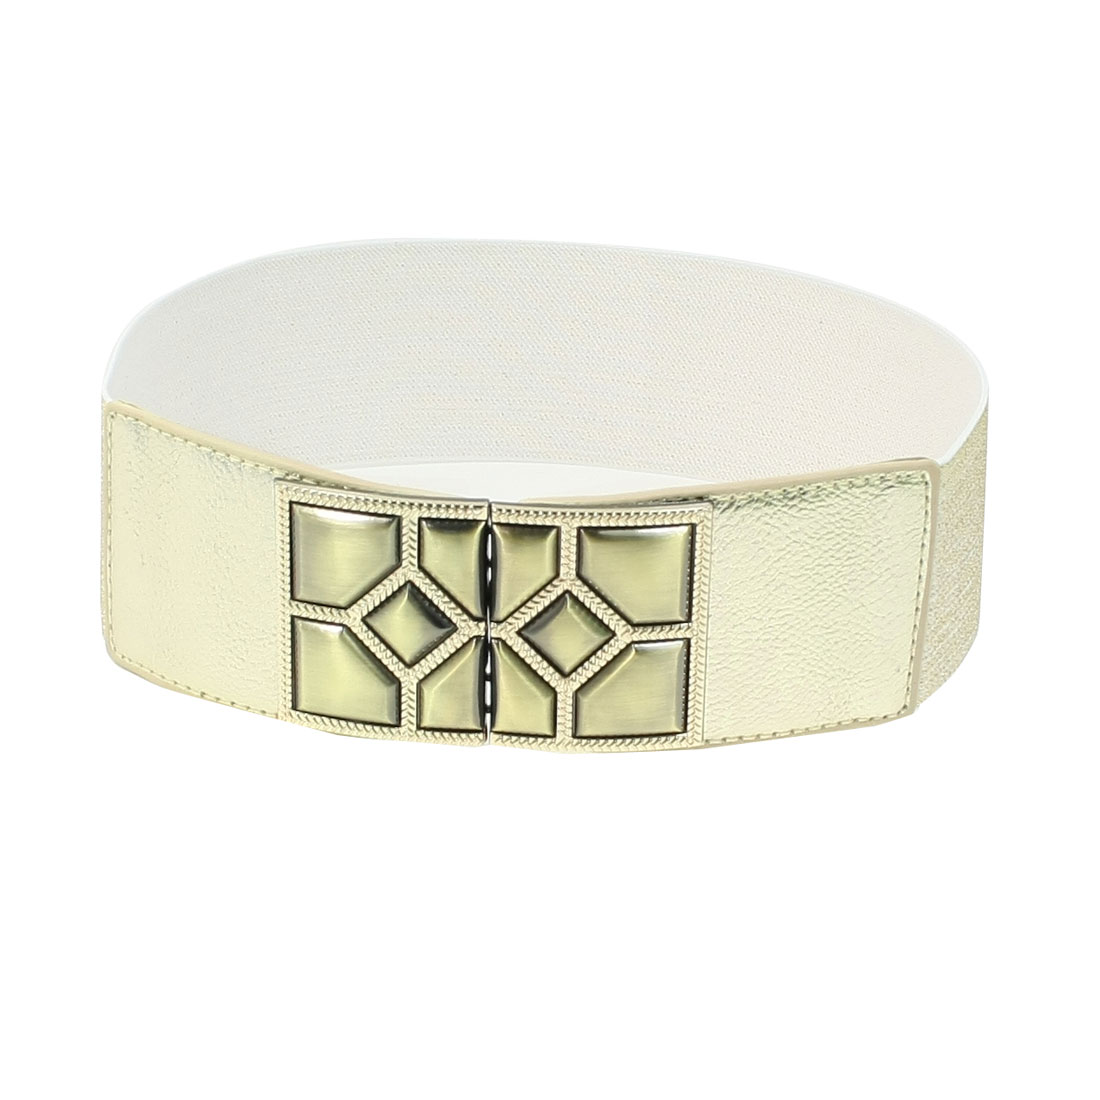 Interlock Buckle Faux Leather Gold Tone White Elastic Belt for Woman Ladies